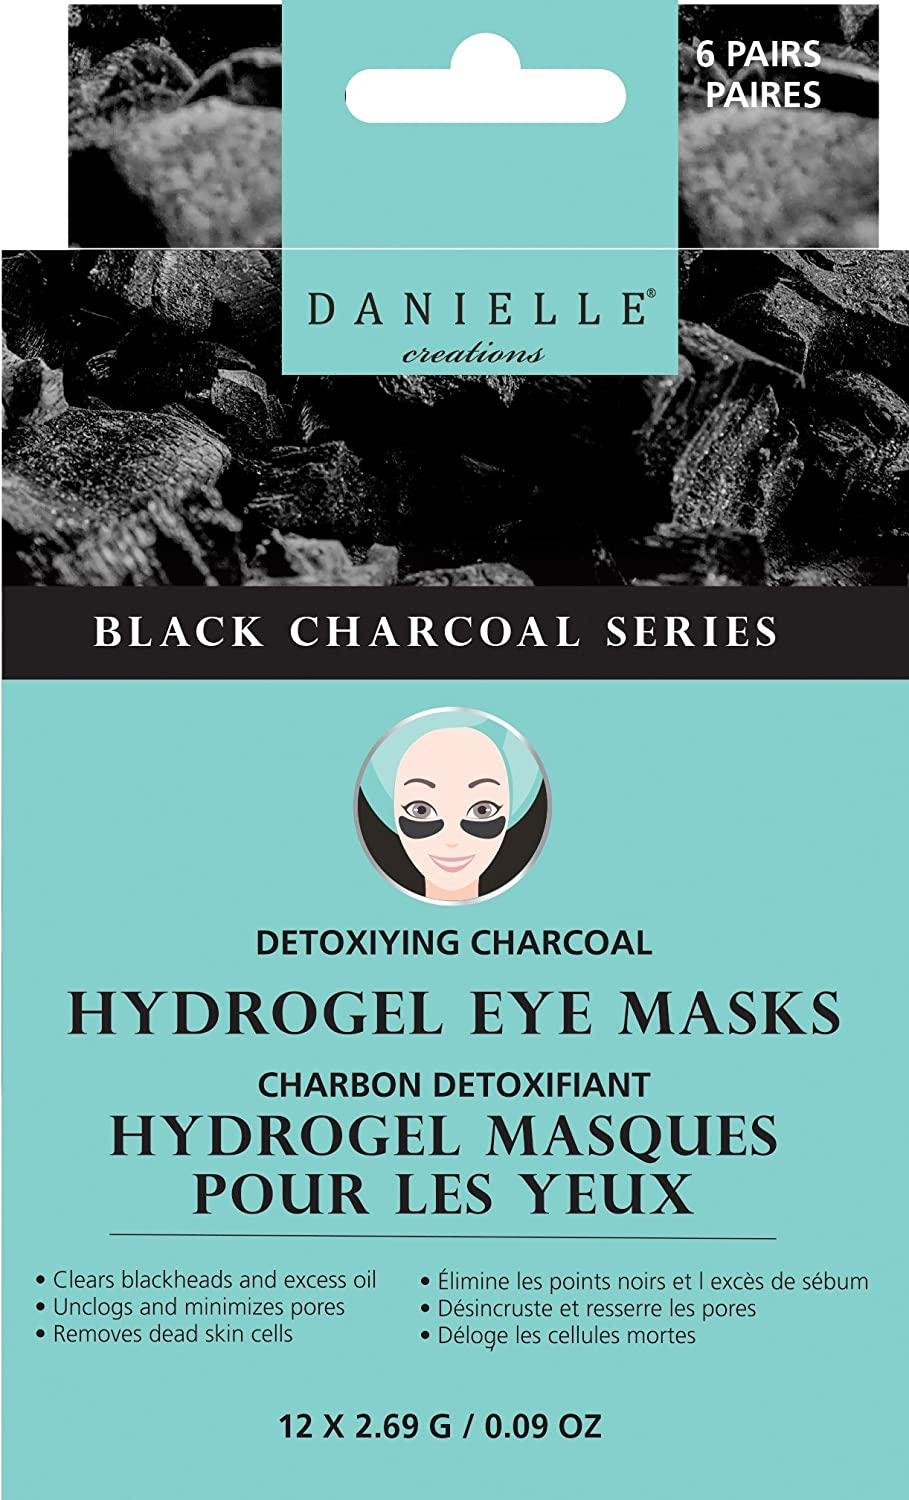 Danielle Detoxifying Charcoal Under Eye Patches - D76401